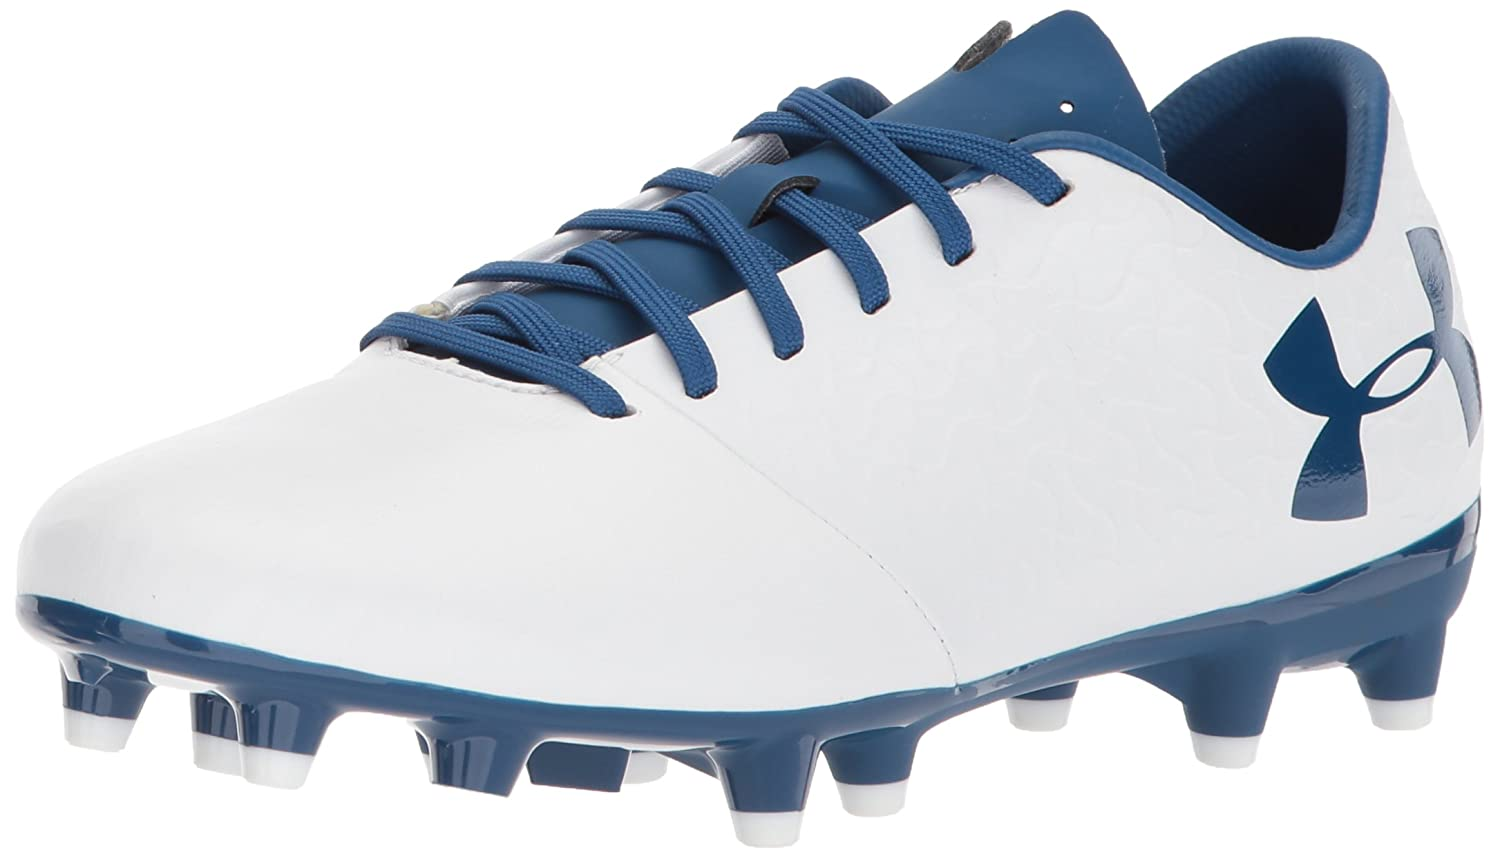 Under Armour Magnetico Select JR Firm Ground Sneaker B071HWJM9F 4.5 M US|White (101)/Moroccan Blue